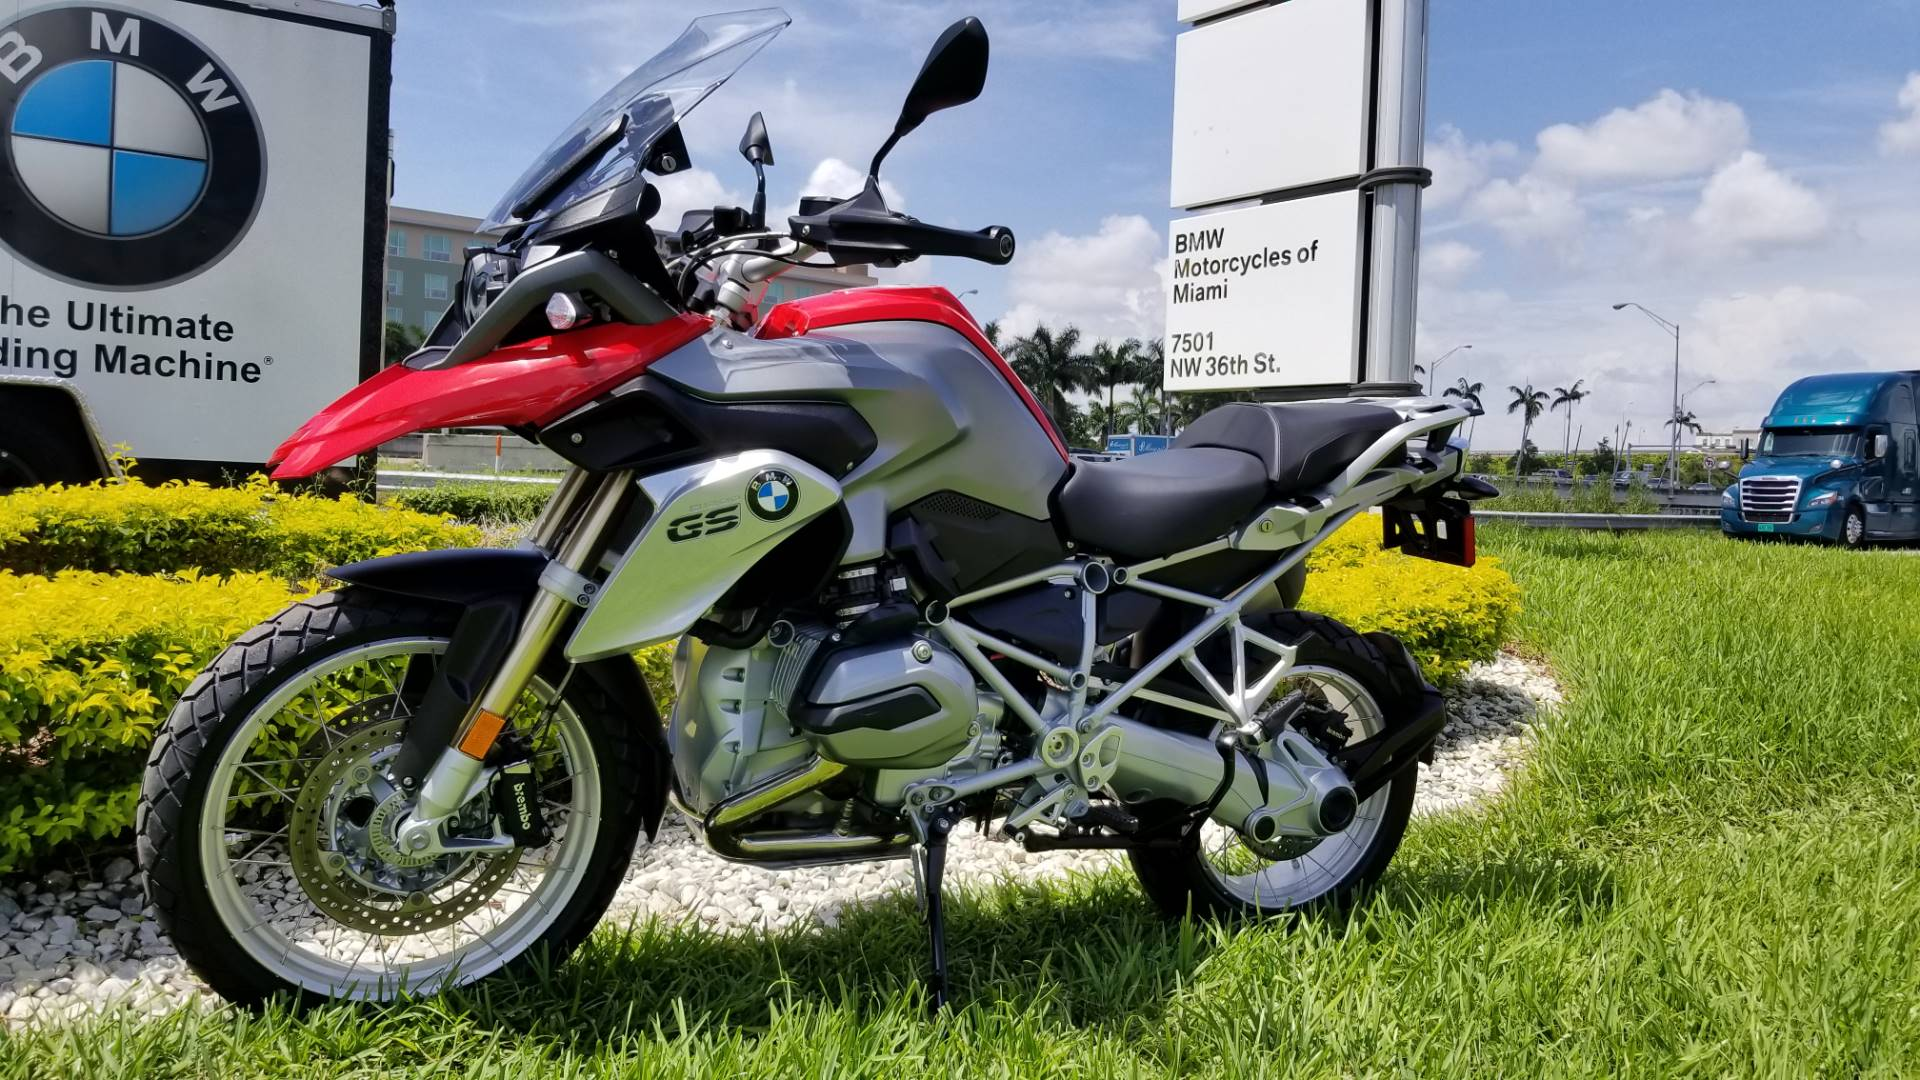 Used 2014 BMW R 1200 GS for sale, BMW R 1200GS for sale, BMW Motorcycle R1200GS, used BMW GS, Dual, BMW.